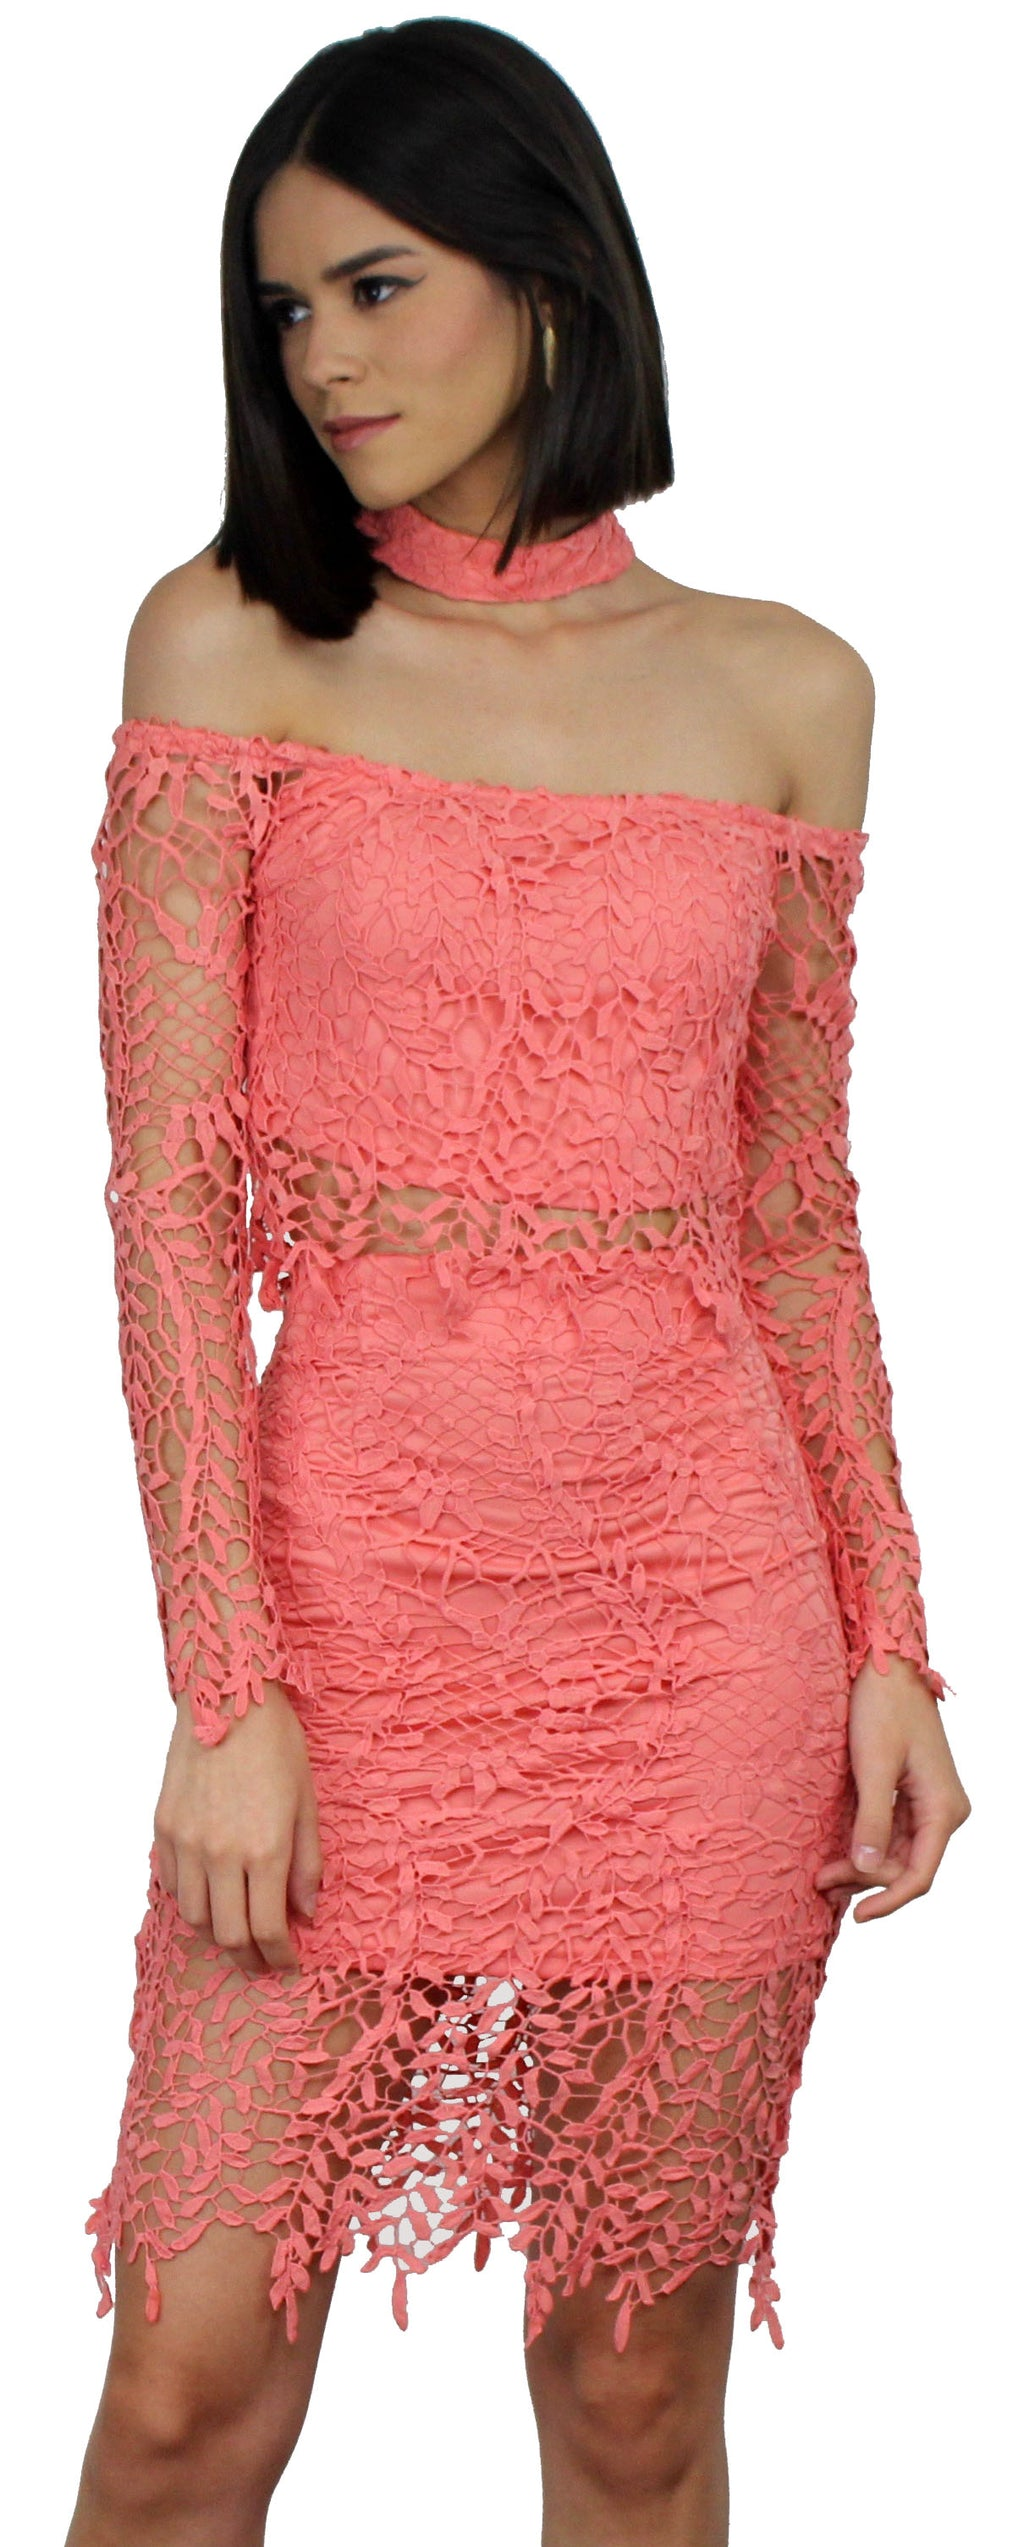 My Way Coral Lace Choker Two-Piece Set